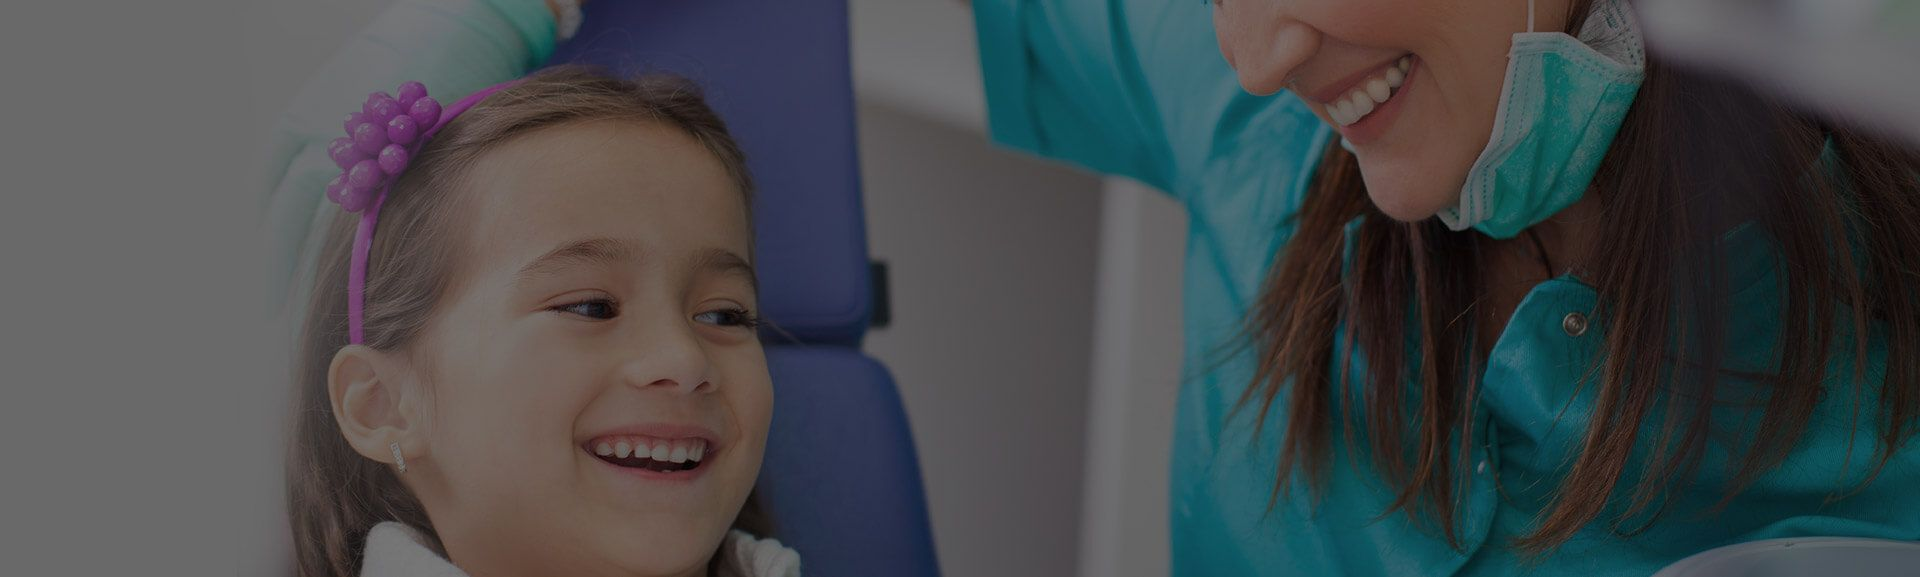 Your Smile is Important, Maintain That Well With Nib Dental Melbourne.